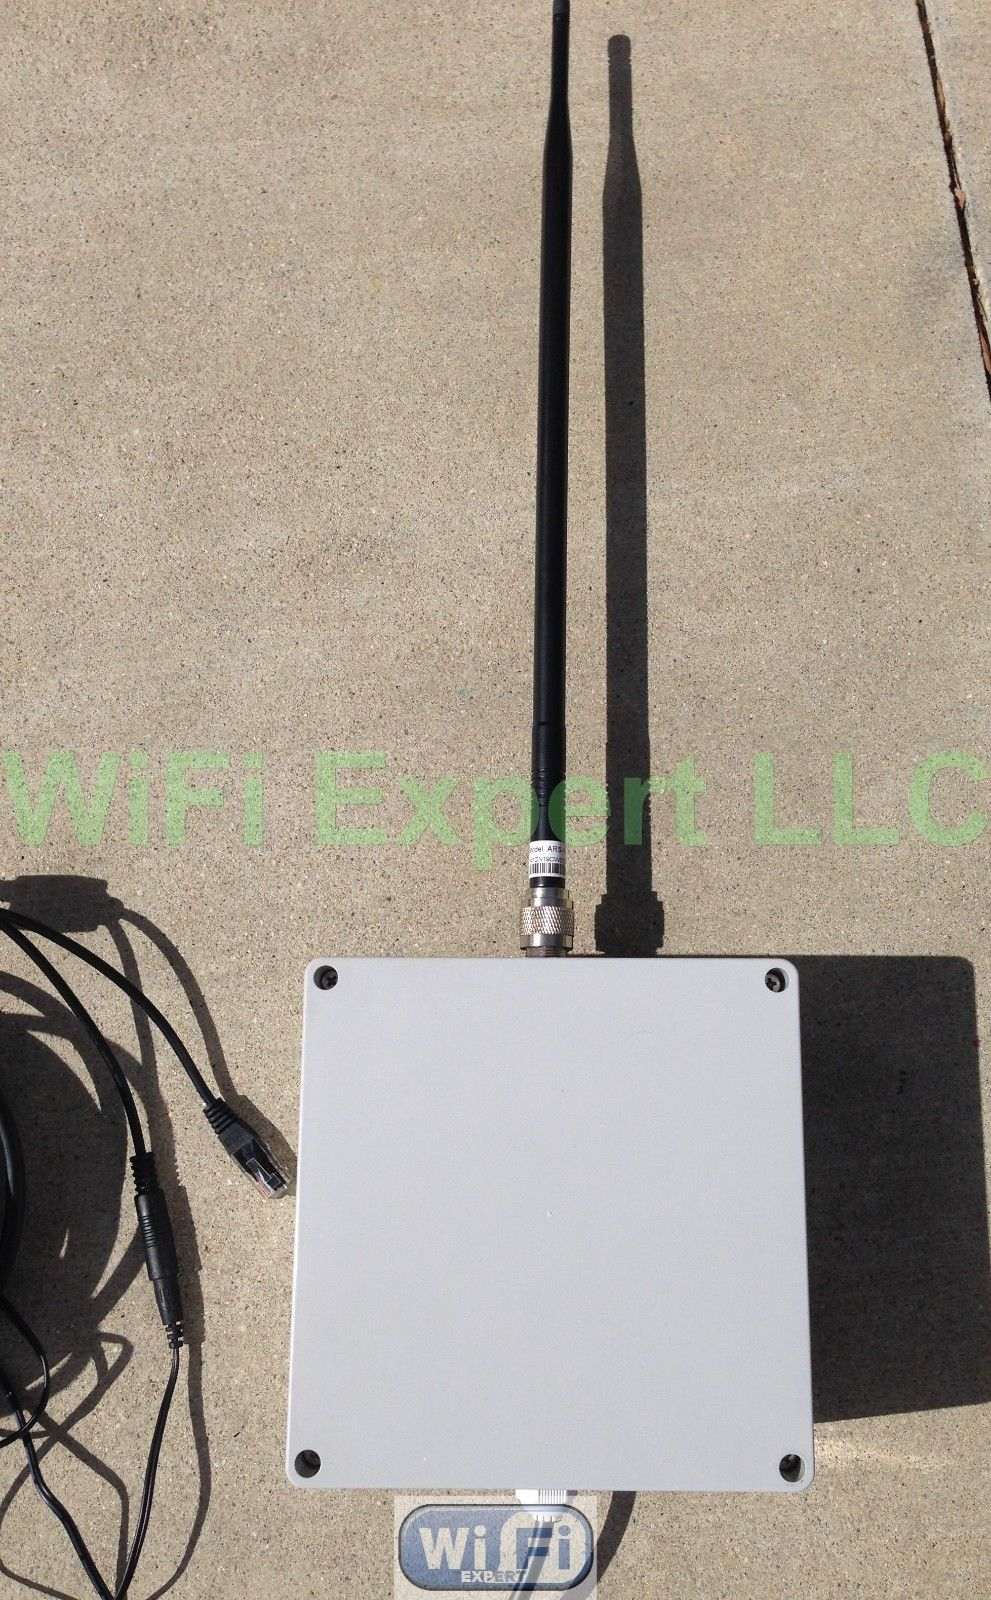 Ap Router Repeater 9dbi High Gain Dd Wrt In Outdoor Box